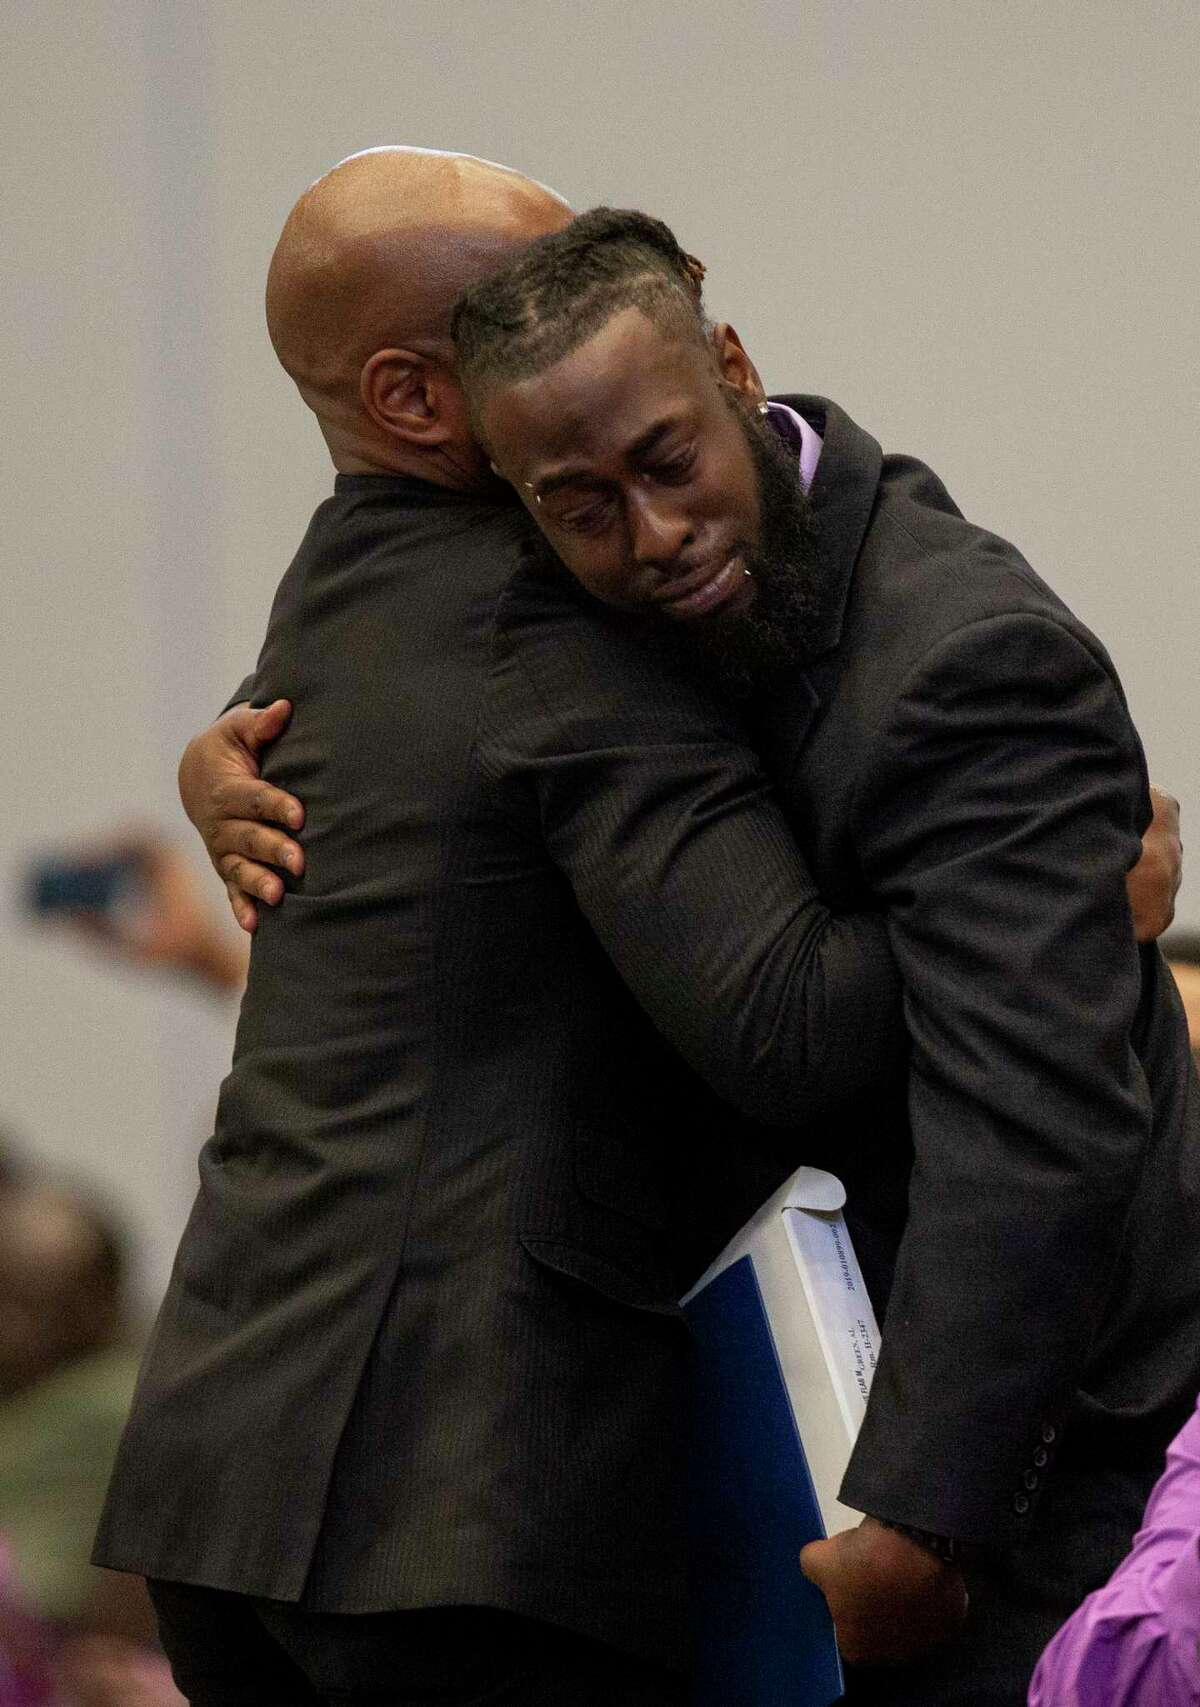 Cameron January, center, is comforted by family as the funeral service for his mother, Pamela Turner, begins at the Lilly Grove Missionary Baptist Church Thursday, May 23, 2019, in Houston. Turner was killed during an altercation with Baytown Police officer Juan Delacruz on Monday, May 13.